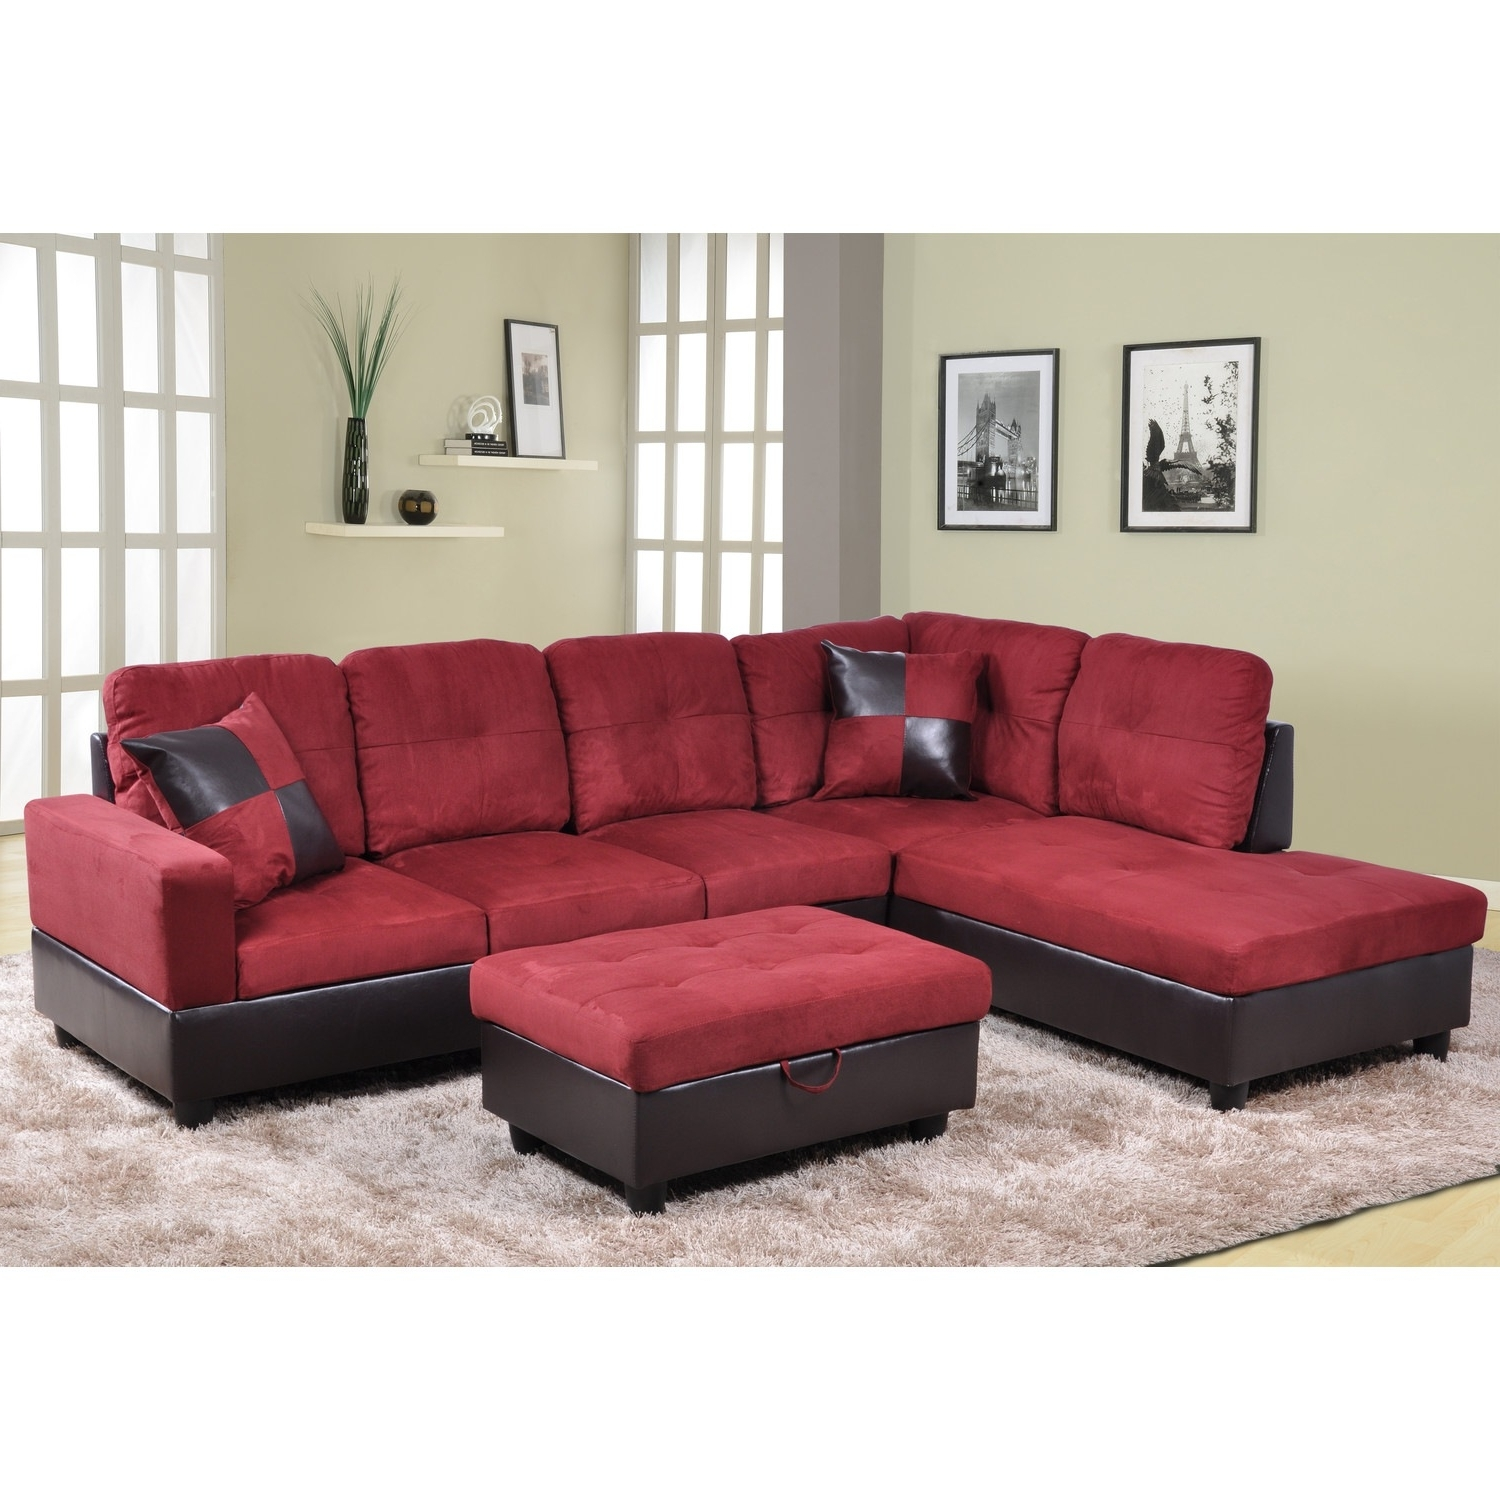 Cheap Sectional Sofas For Sale Inspirational Furniture Sears Sofa With Widely Used Sears Sectional Sofas (View 2 of 20)